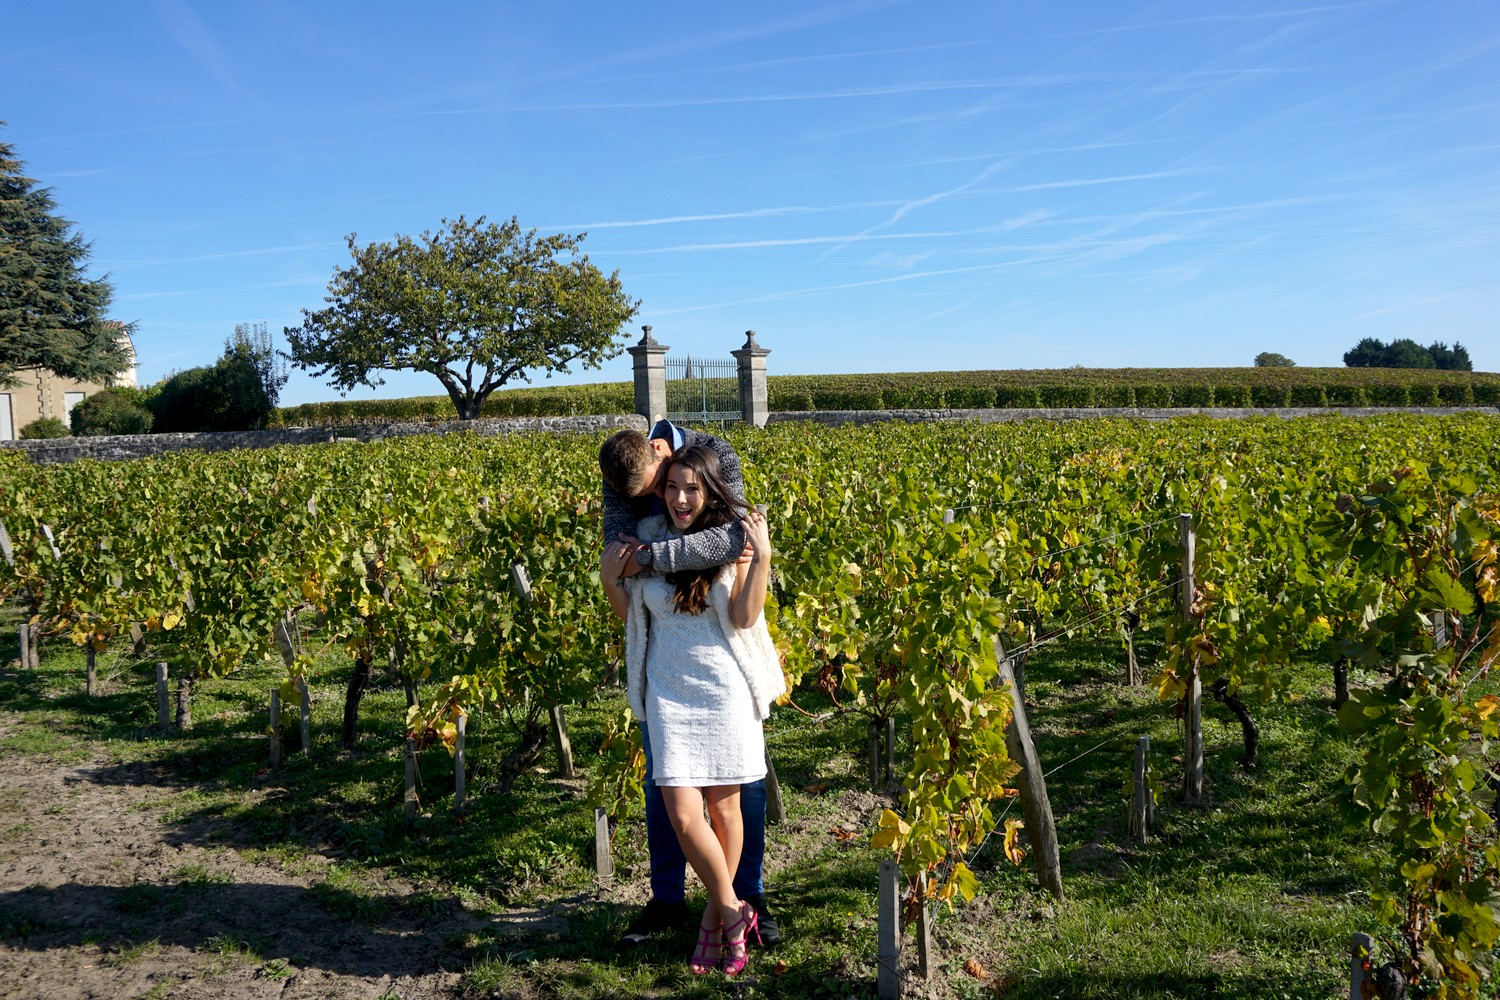 1-an-du-blog-en-couple-bordeaux-corse-blog-voyage-lifestyle-mode-look-shooting-photo-couple-vigne-03